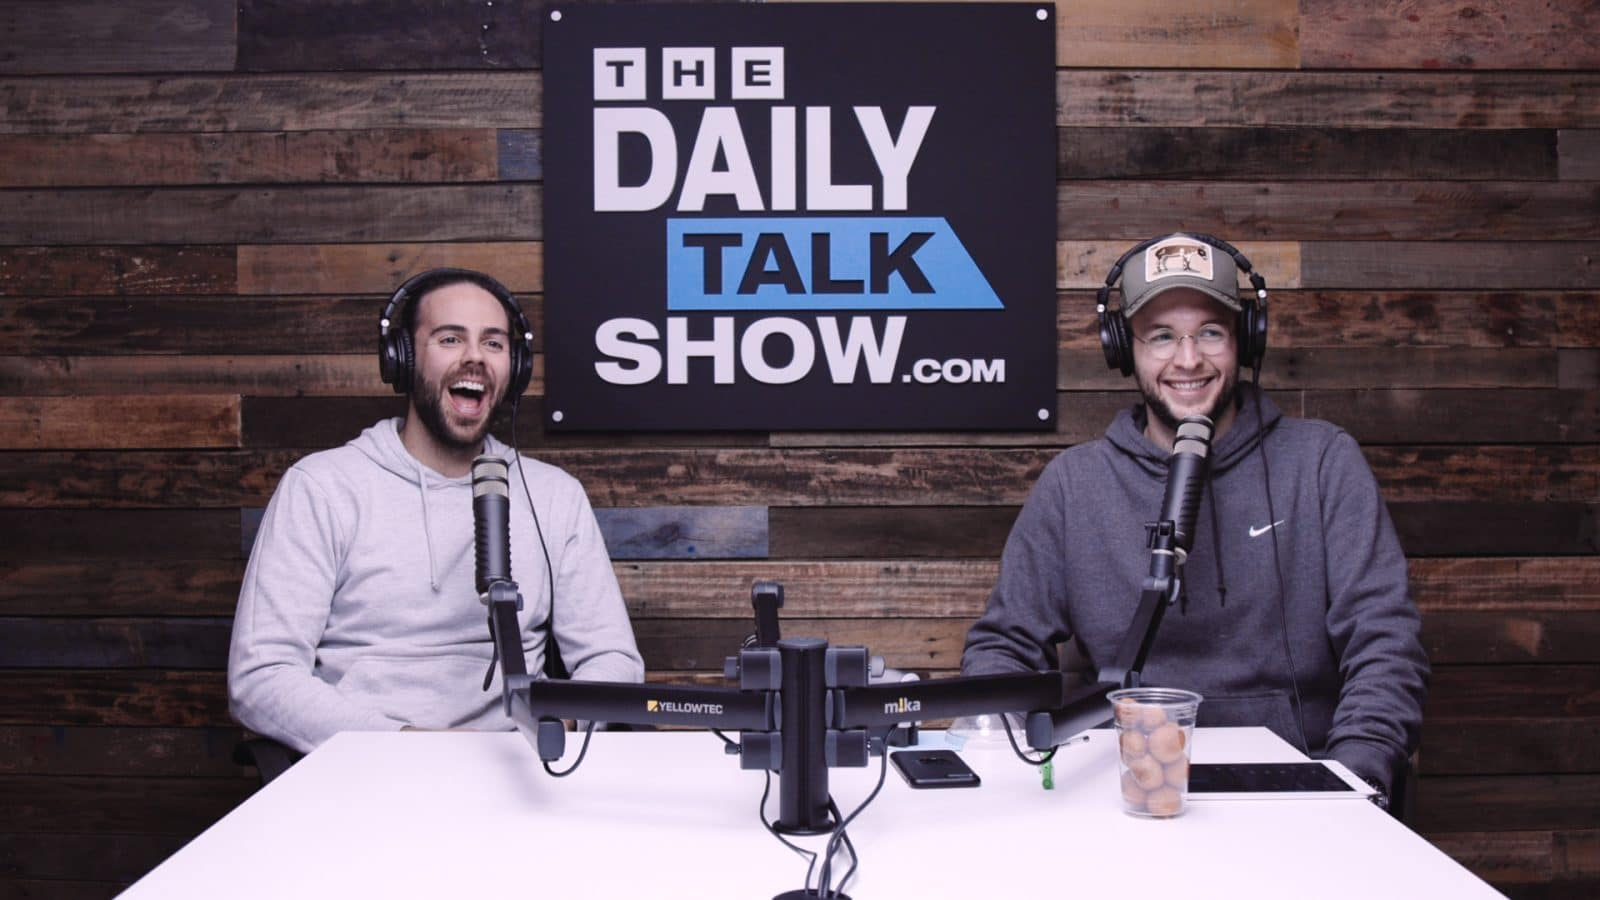 The-Daily-Talk-Show-403